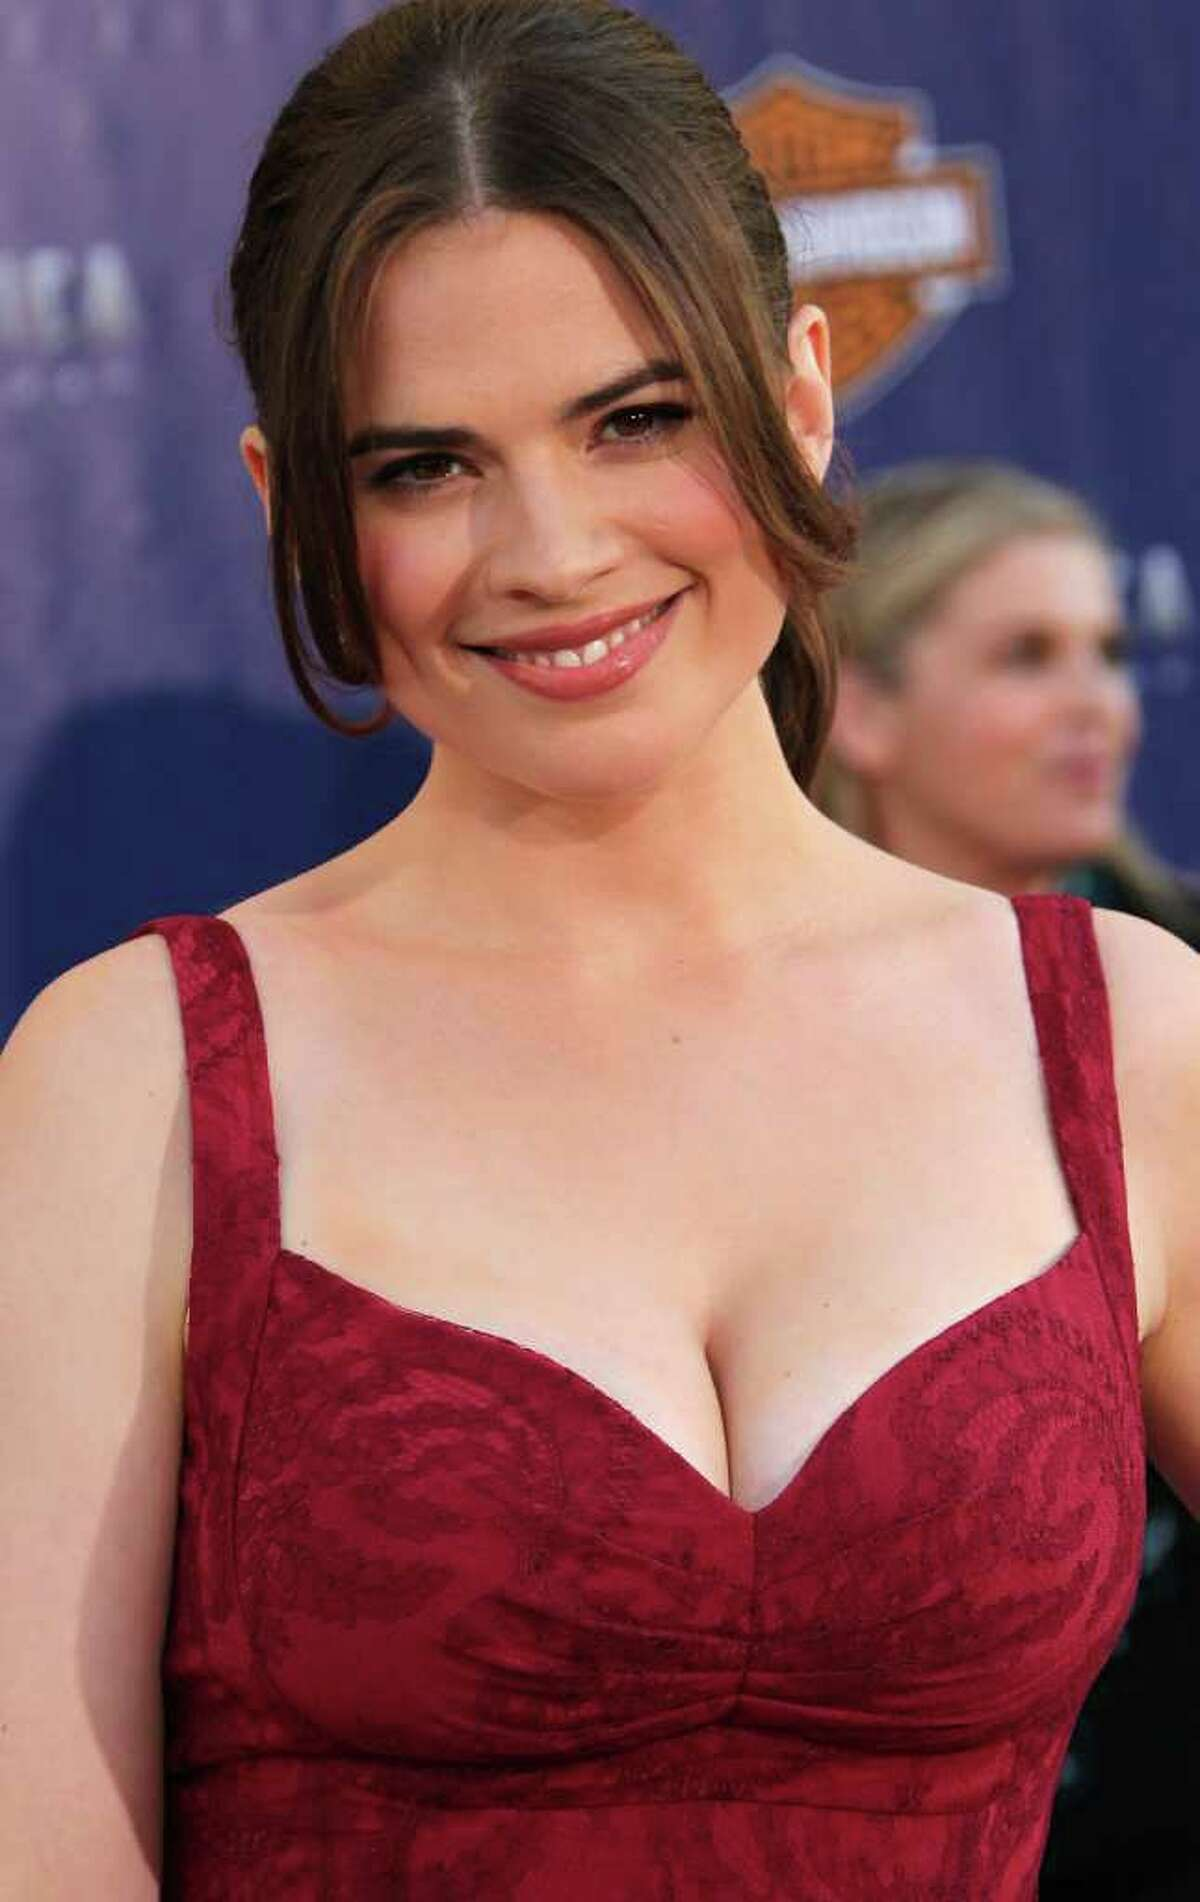 HOLLYWOOD, CA - JULY 19: Actress Hayley Atwell attends the